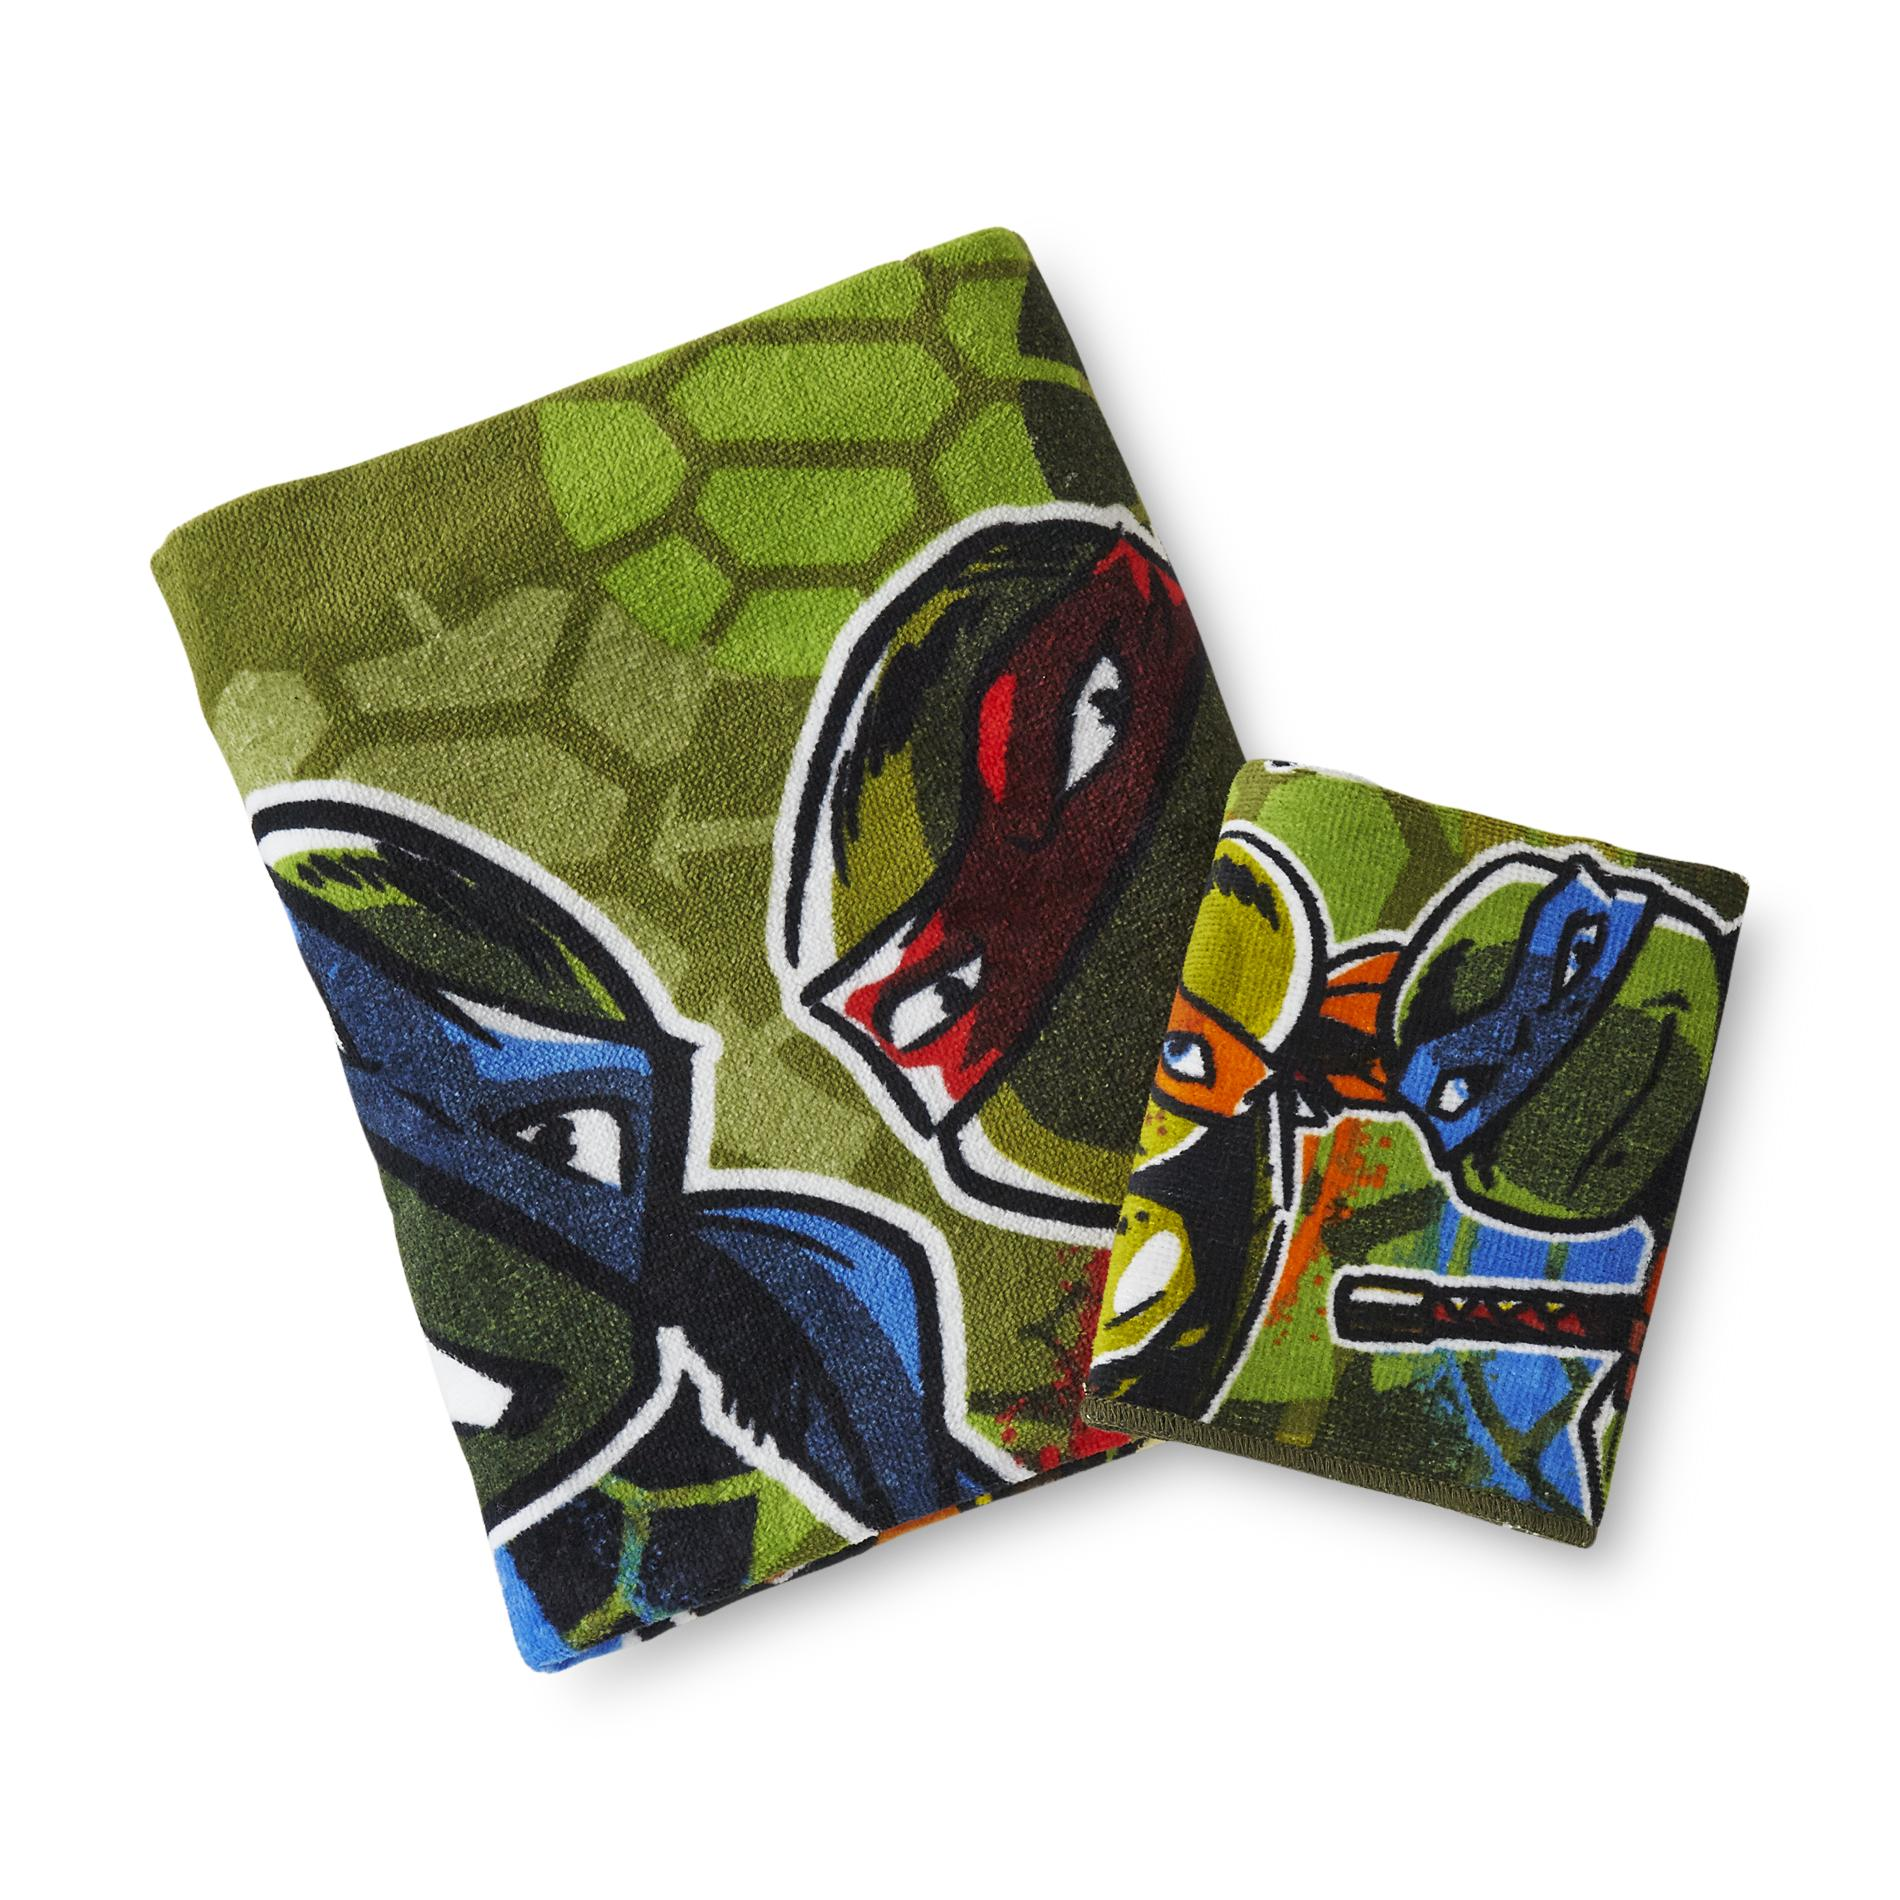 Nickelodeon Teenage Mutant Ninja Turtles Bath Towel & Washcloth